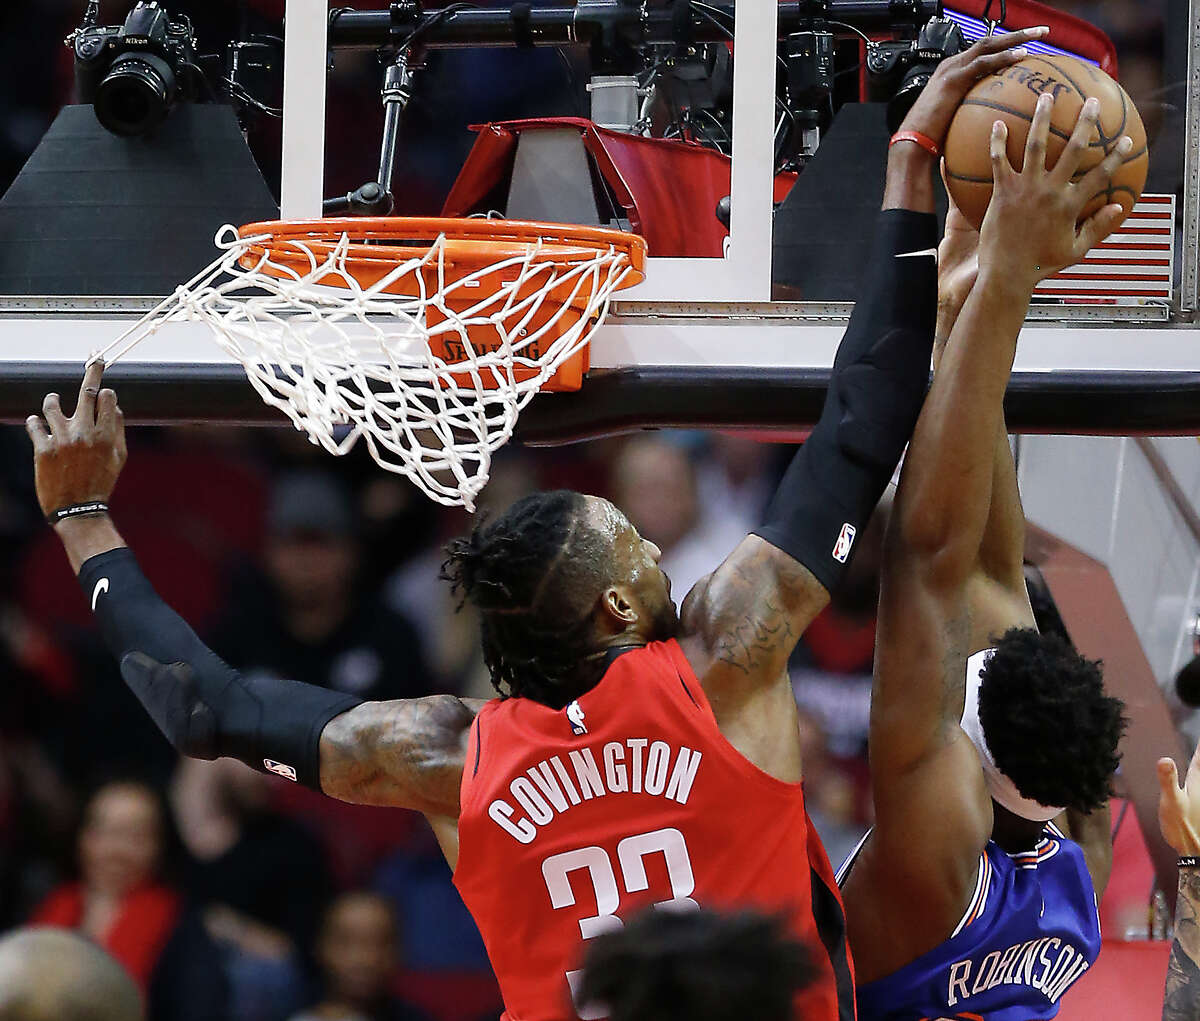 Houston Rockets forward Robert Covington (33) goes up for a block on a shot by New York Knicks center Mitchell Robinson (23) and is called for a foul during the first half of an NBA basketball game on Monday, Feb. 24, 2020, at Toyota Center in Houston.